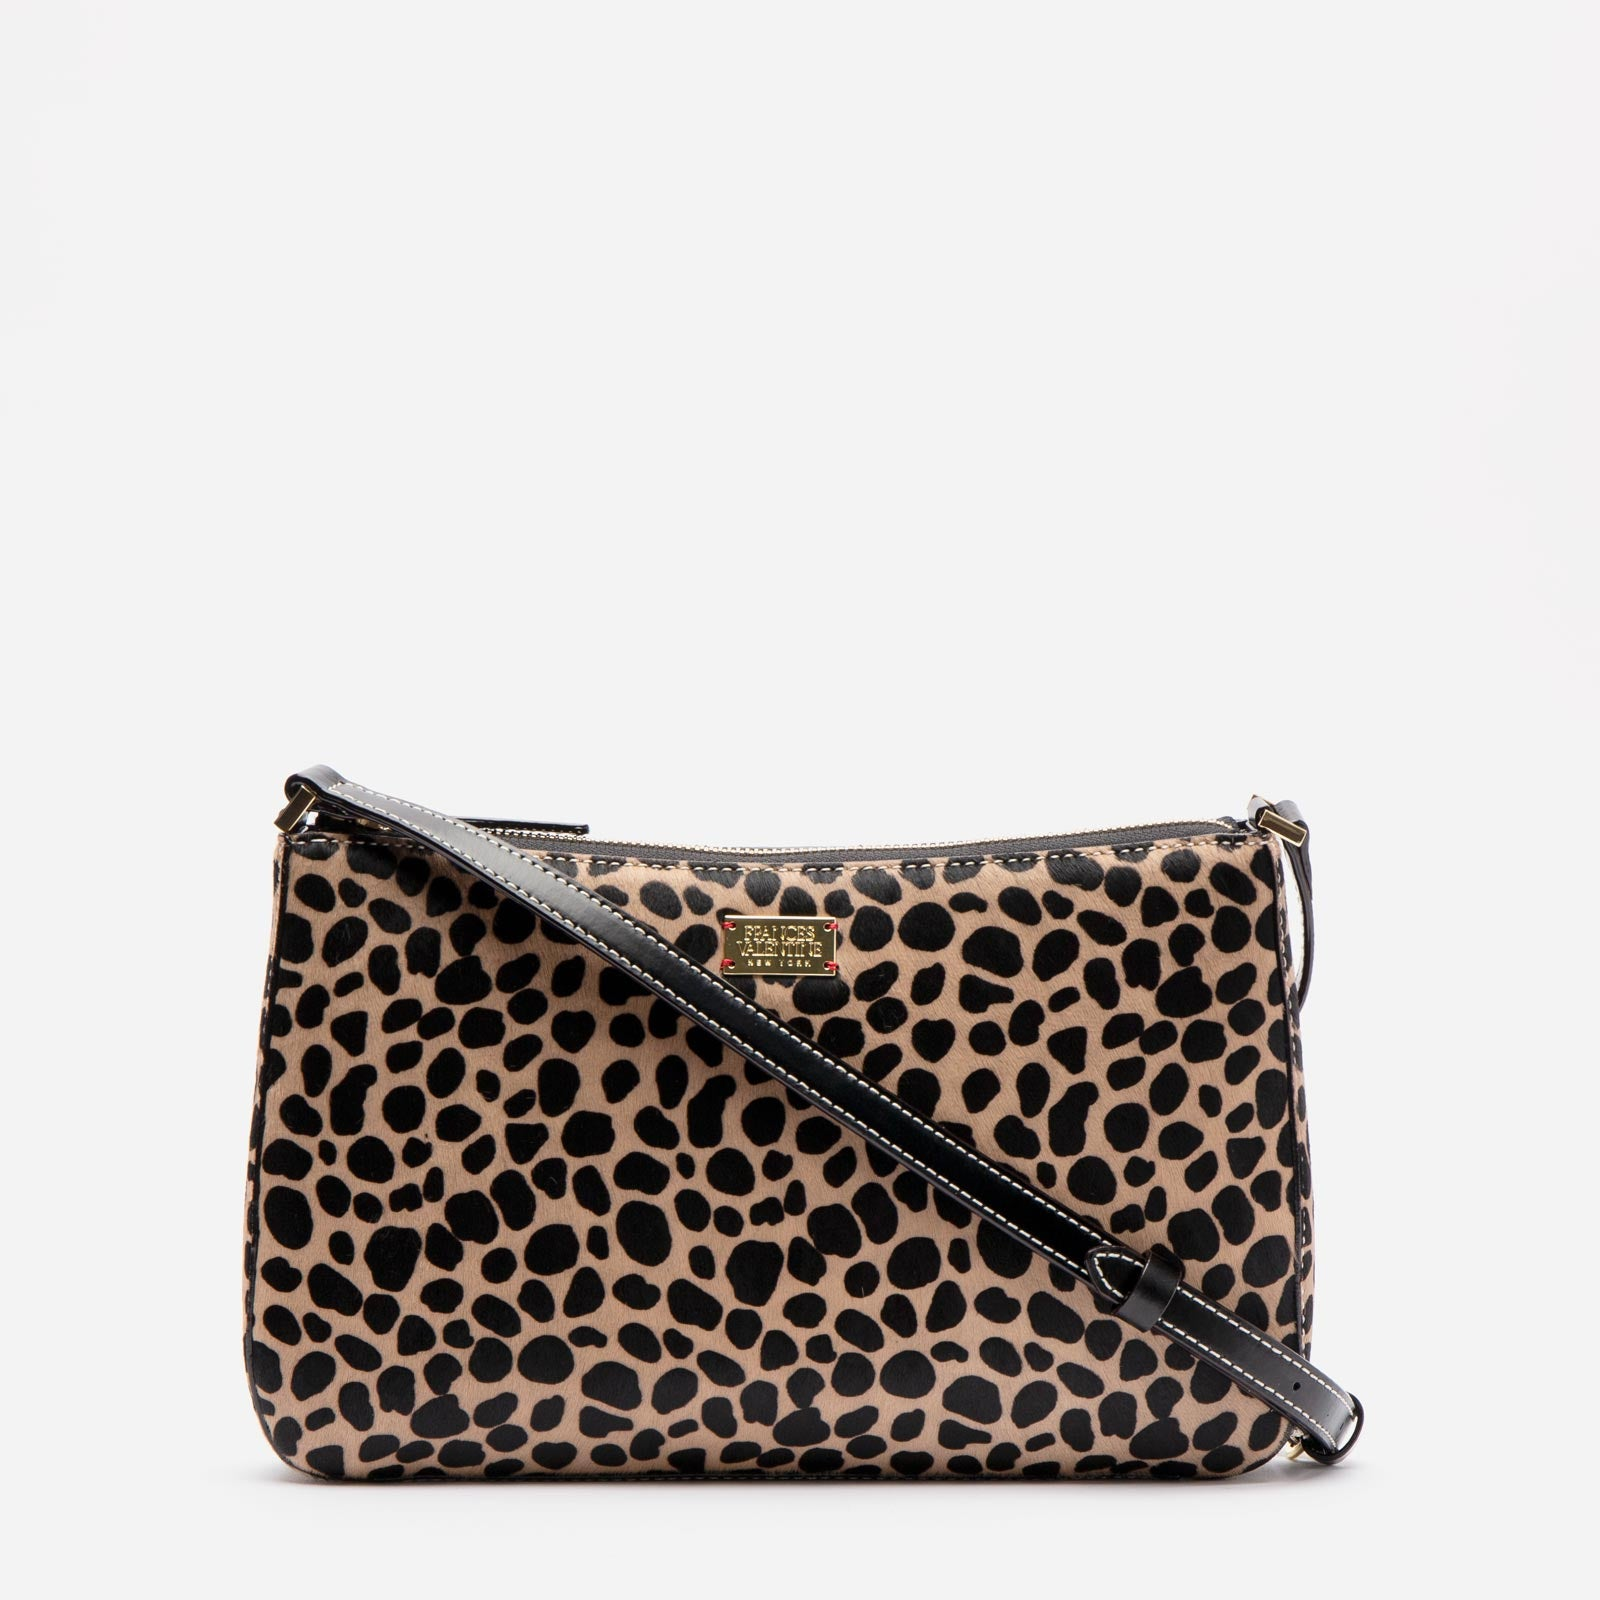 Poppy Crossbody Printed Haircalf Cheetah - Frances Valentine